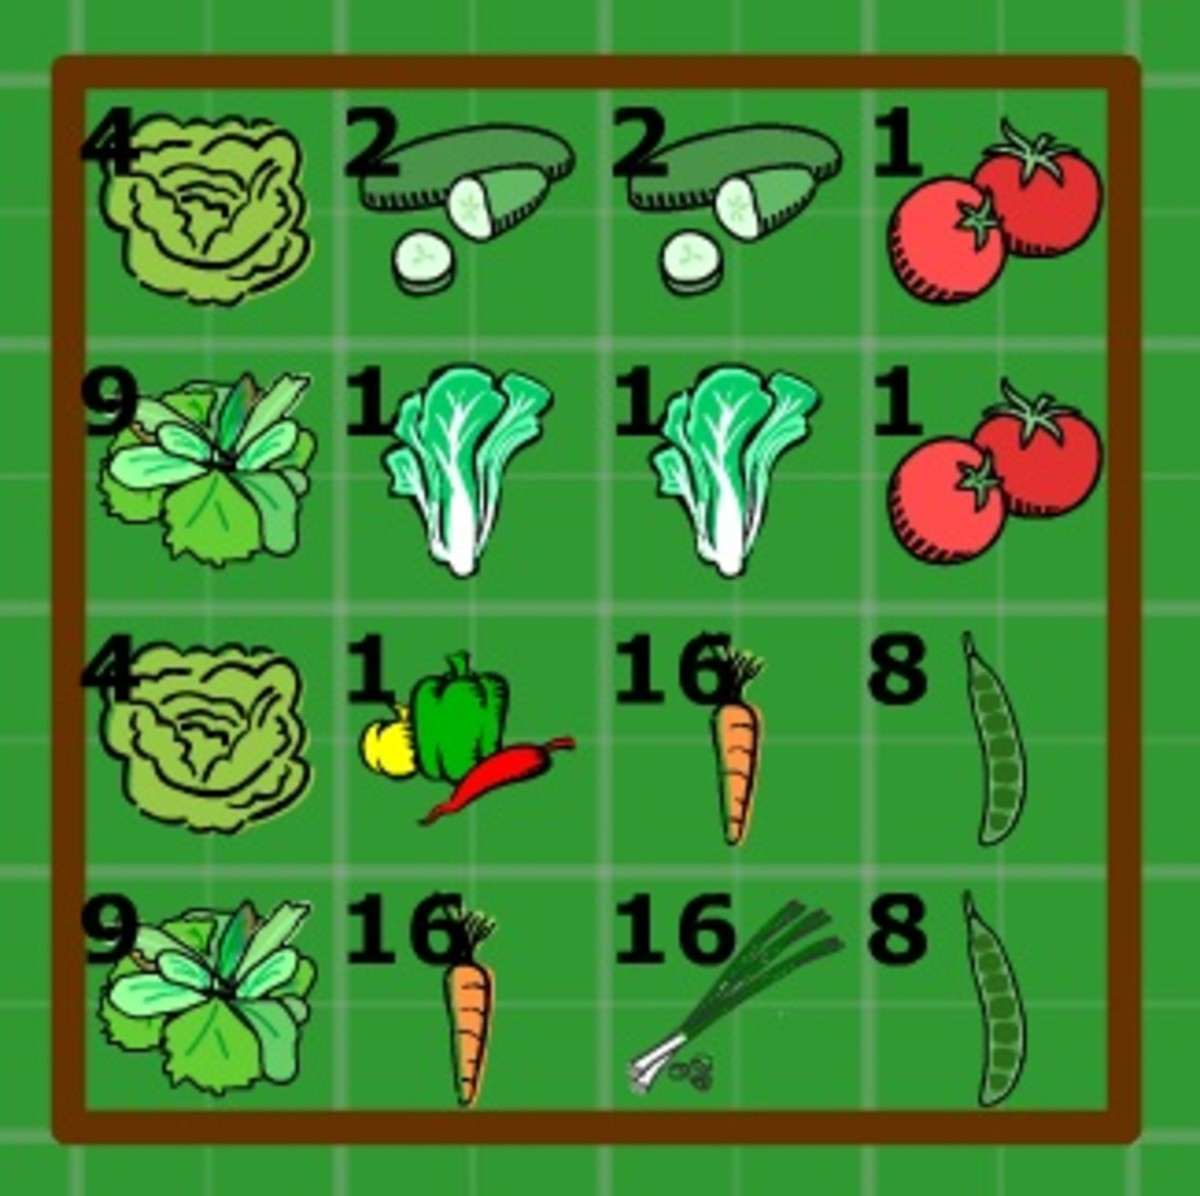 salad vegetable garden plan